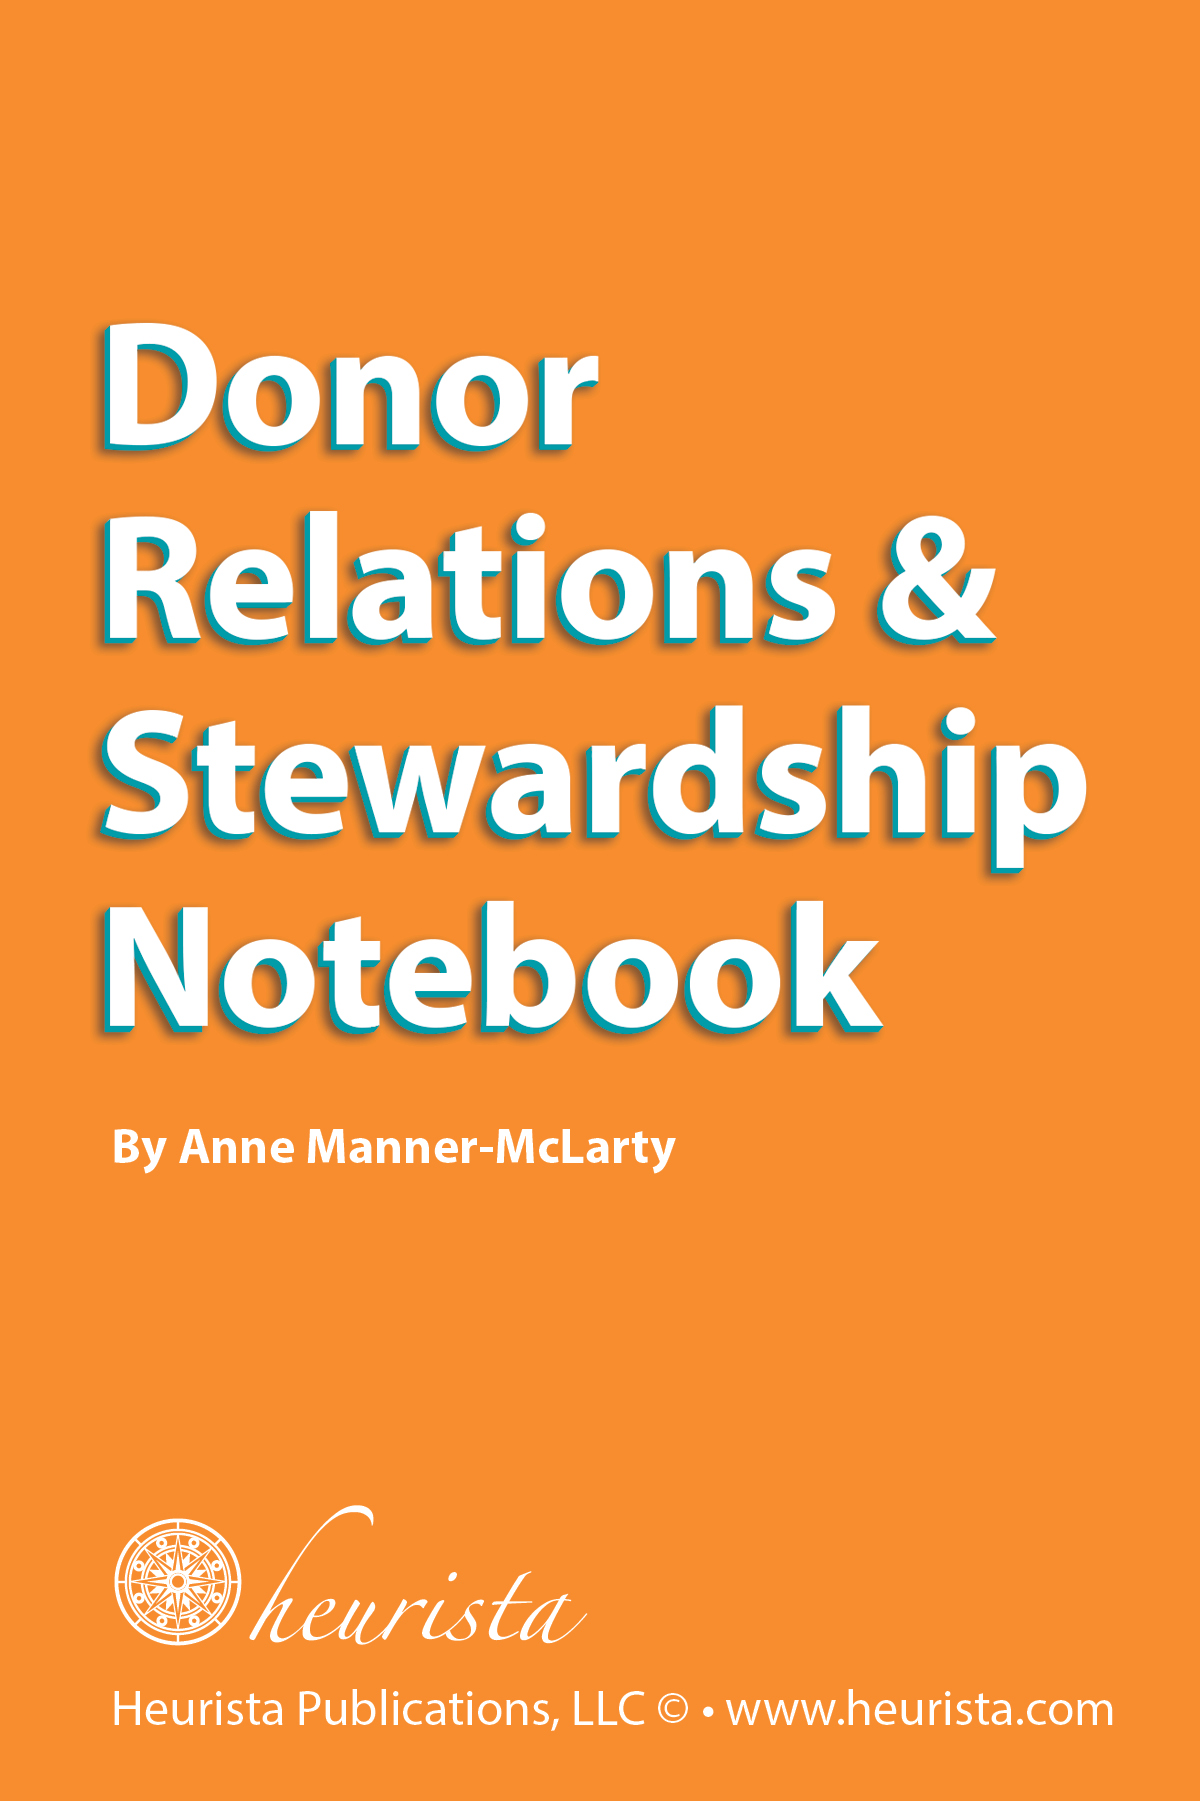 donor-relations-stewardship-notebook.jpg